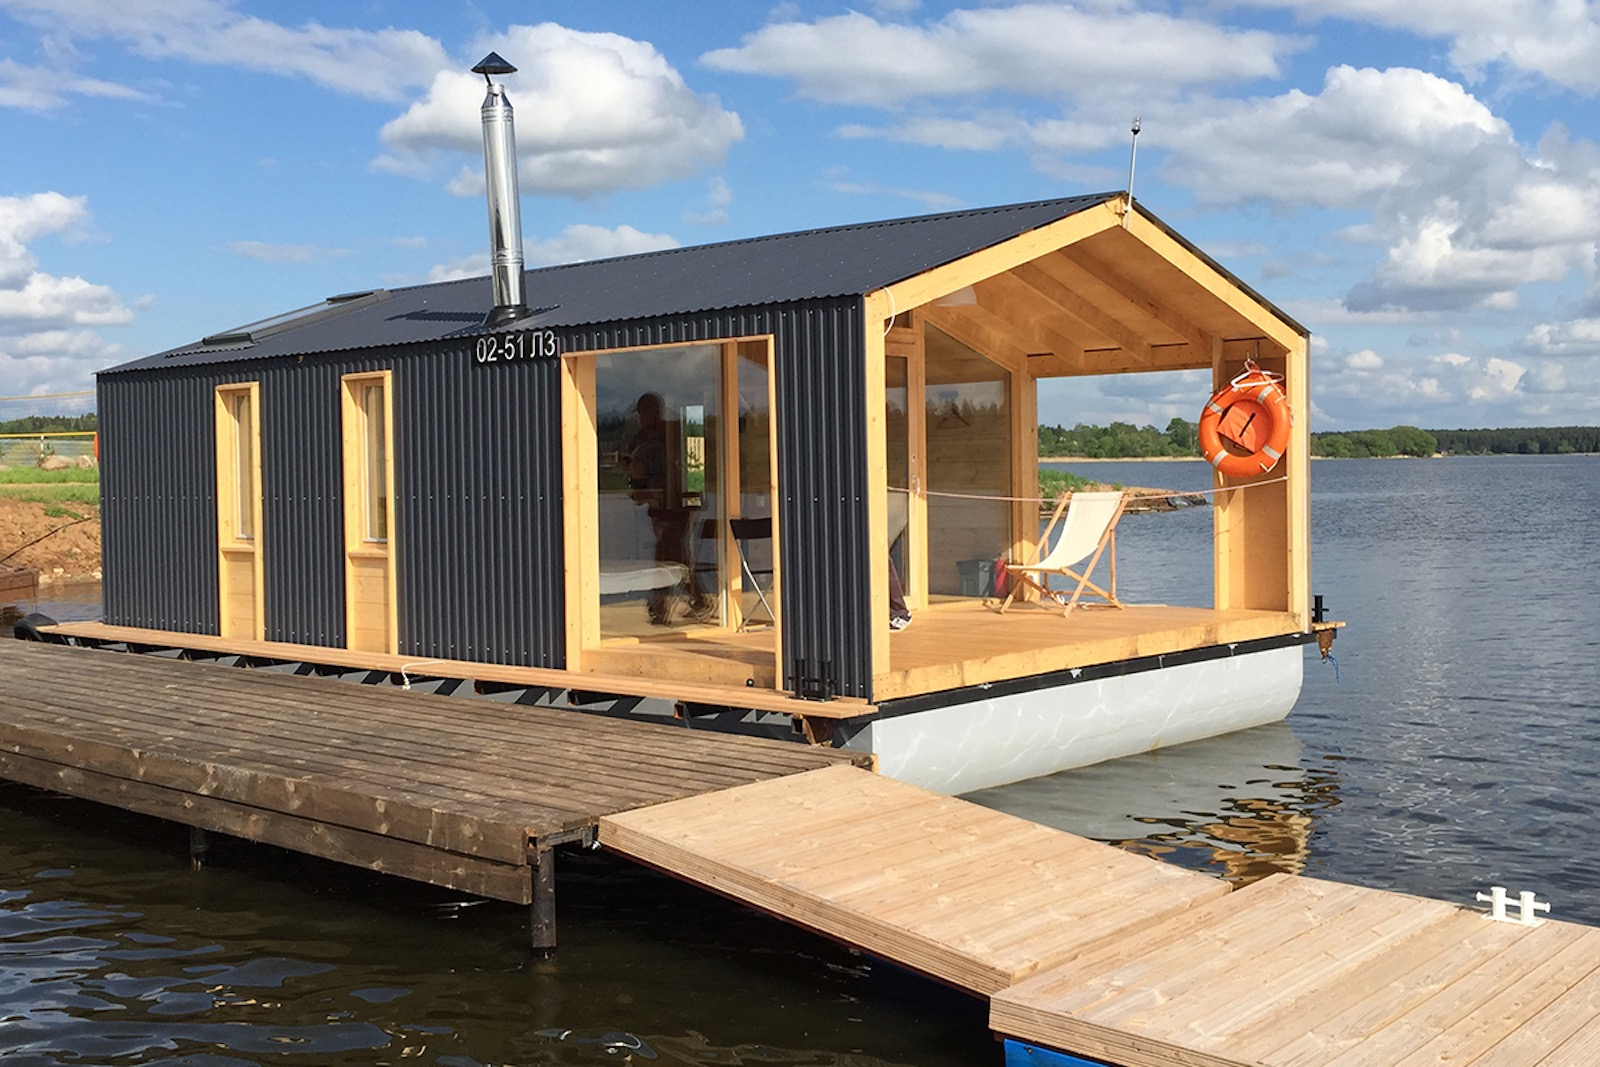 DublDom Houseboat, A Modular Floating Cabin With A 280 Sq Ft Studio Floor  Plan.